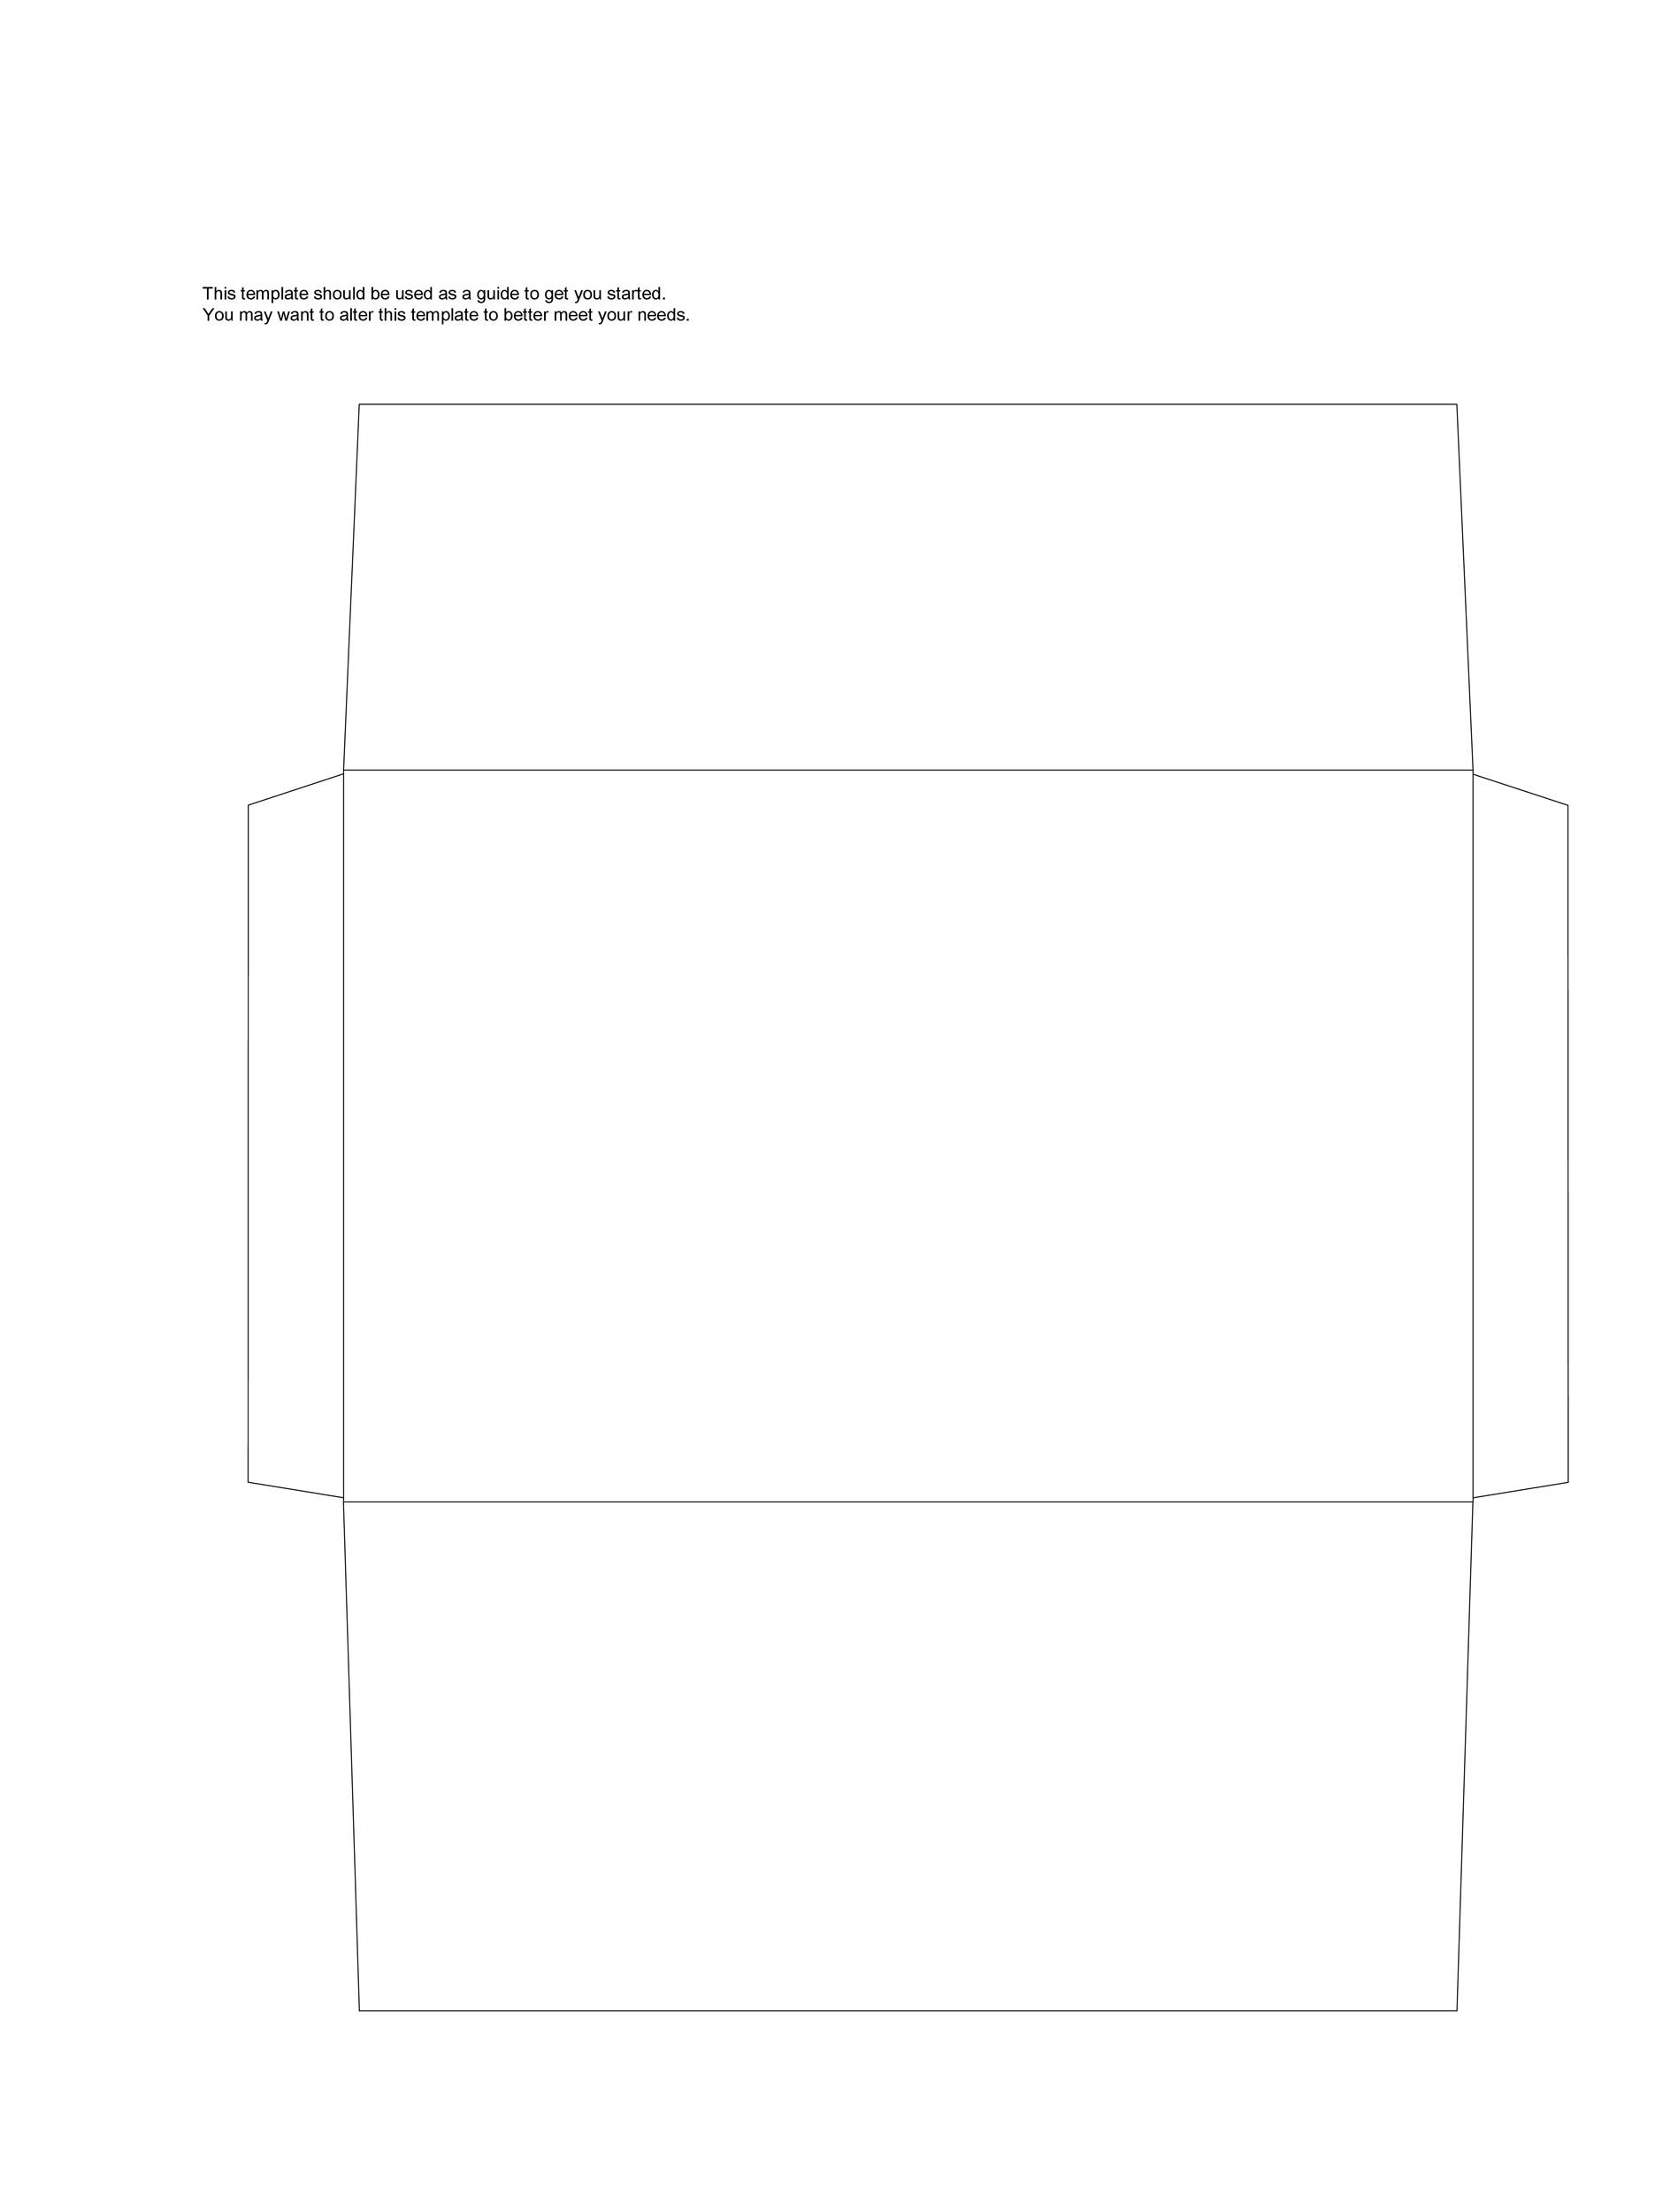 6X9 Envelopes Template from templatelab.com